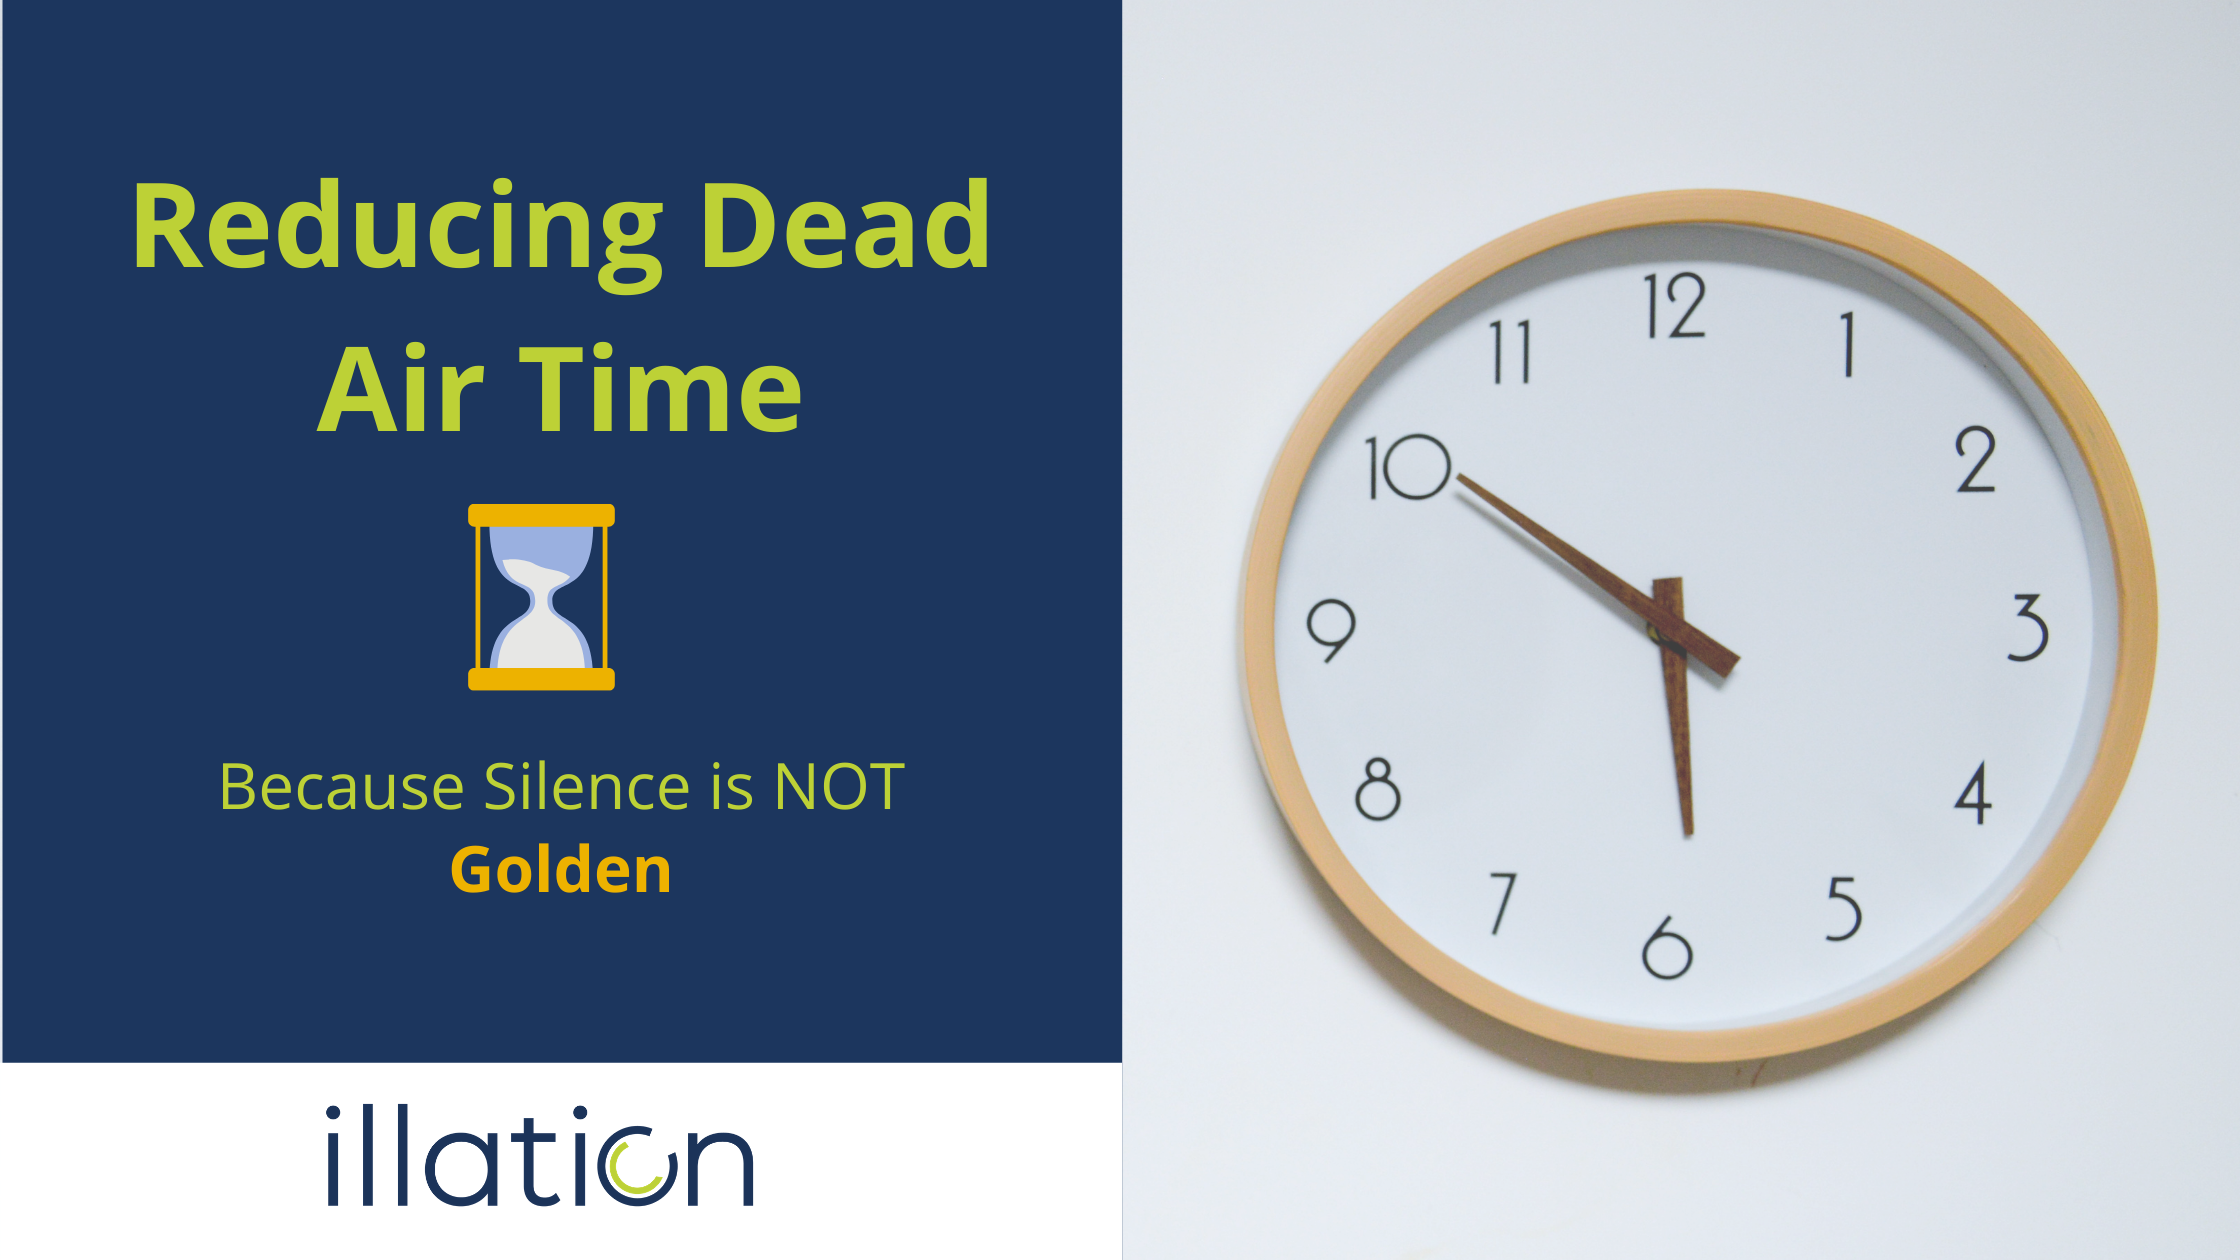 Reducing Dead Air Time in Call Centres: Because Silence Is NOT Golden